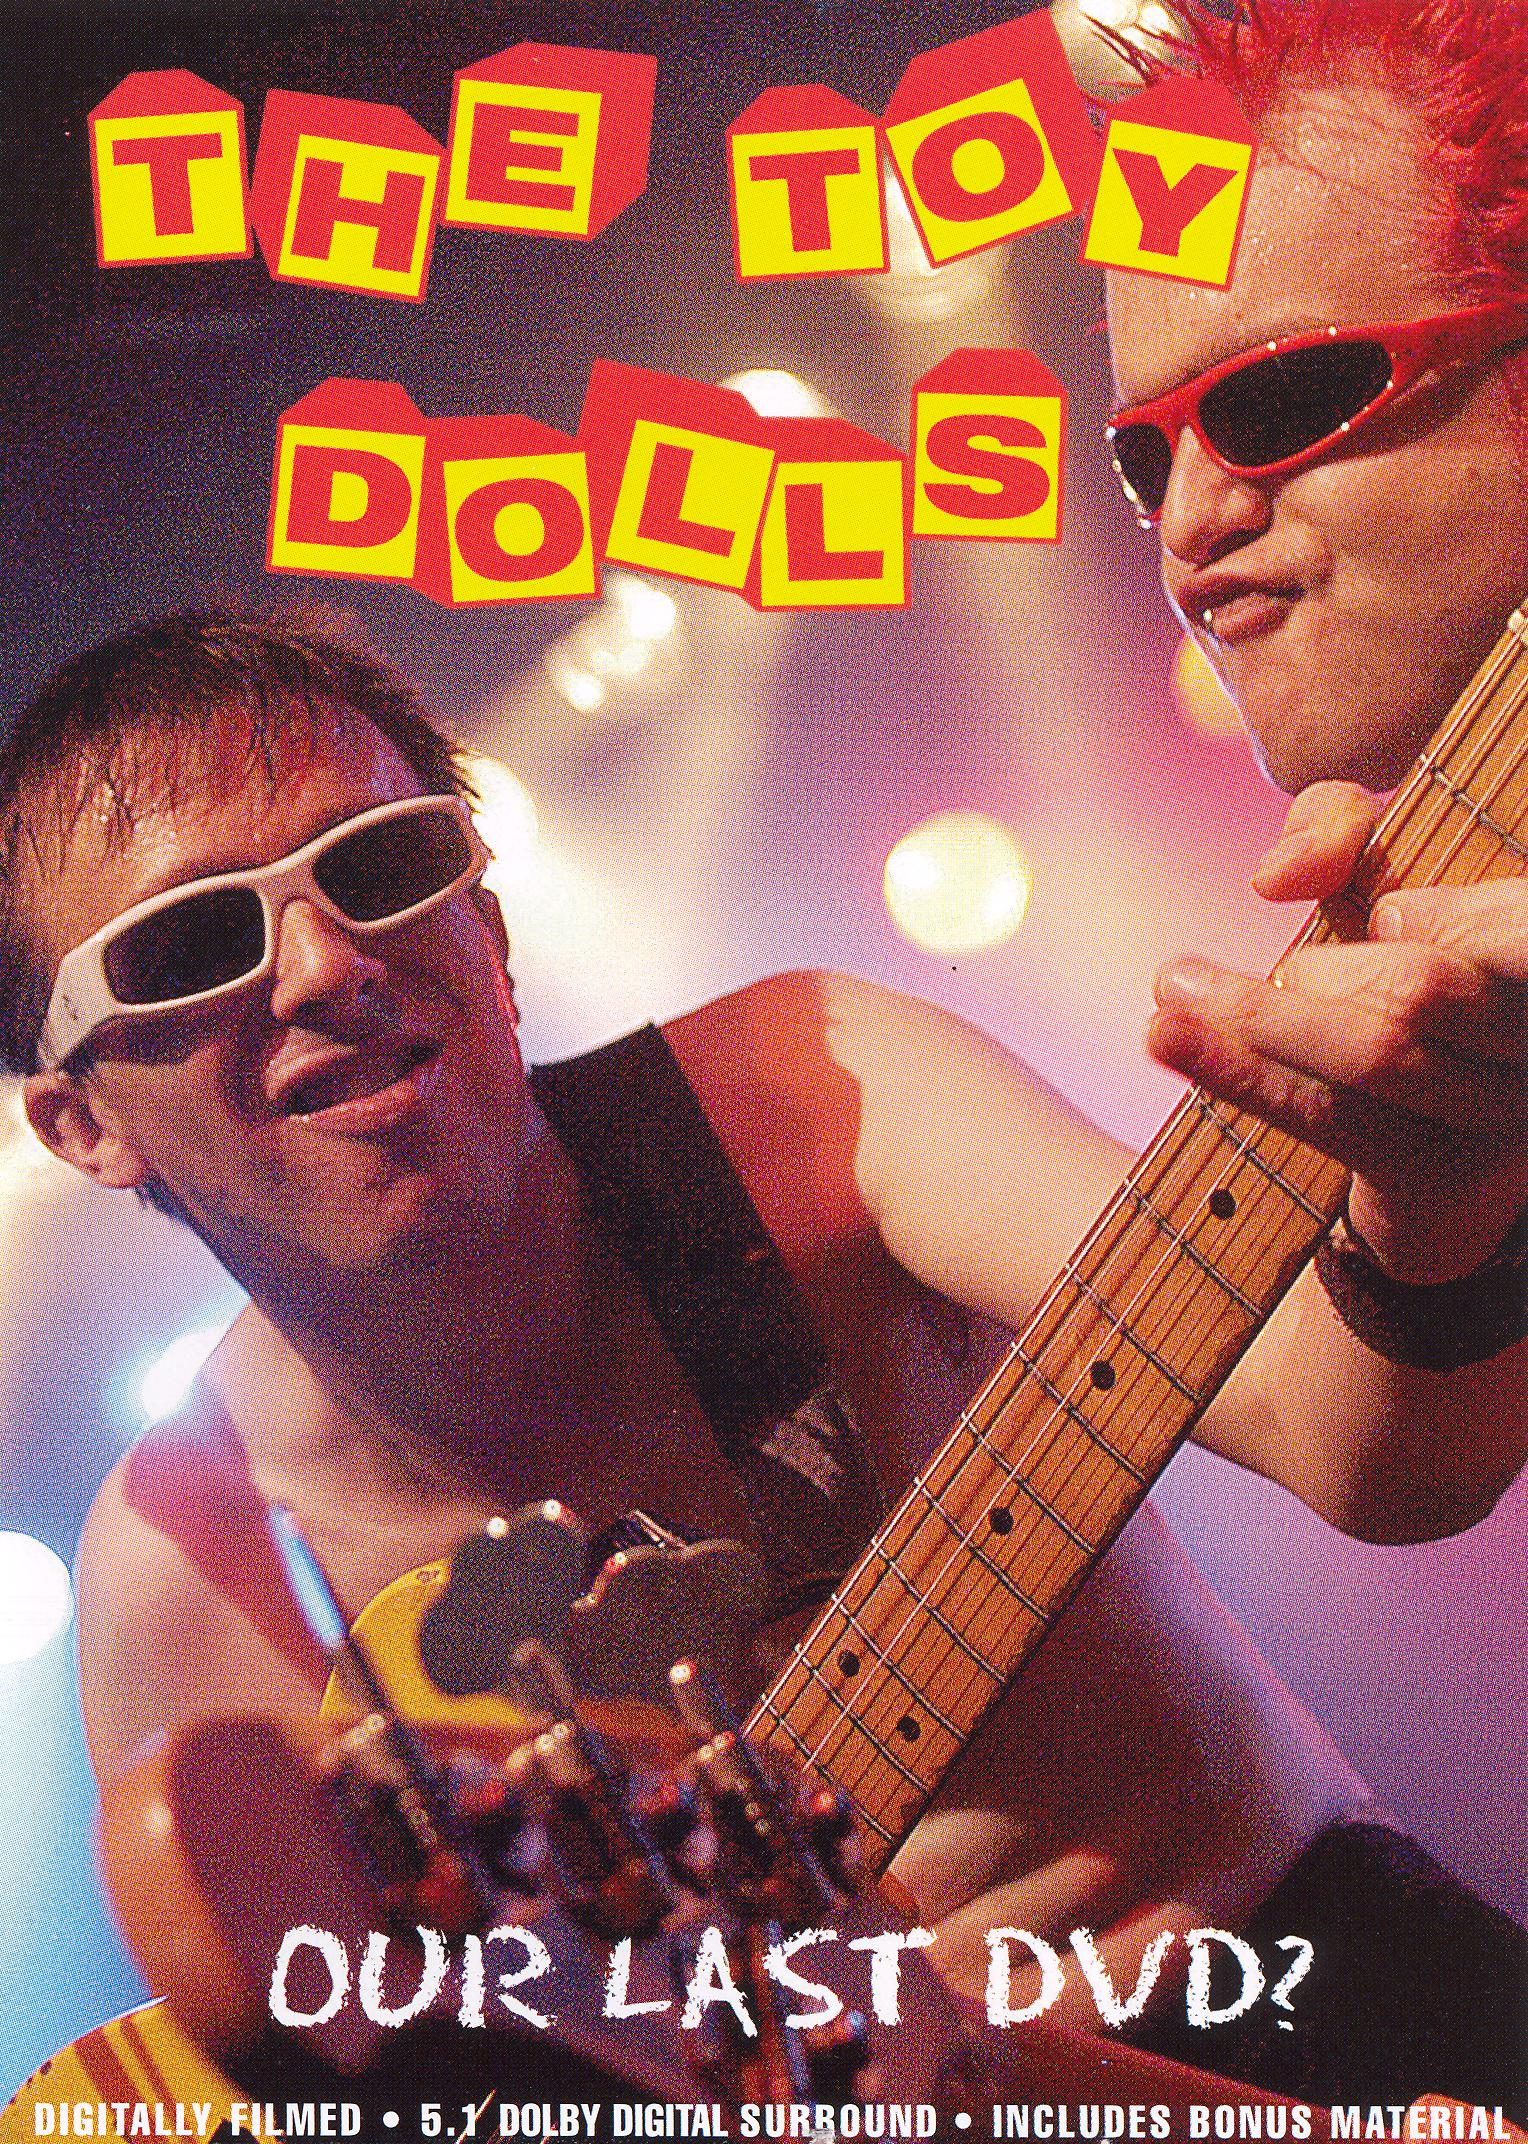 Toy Dolls: Our Last DVD?